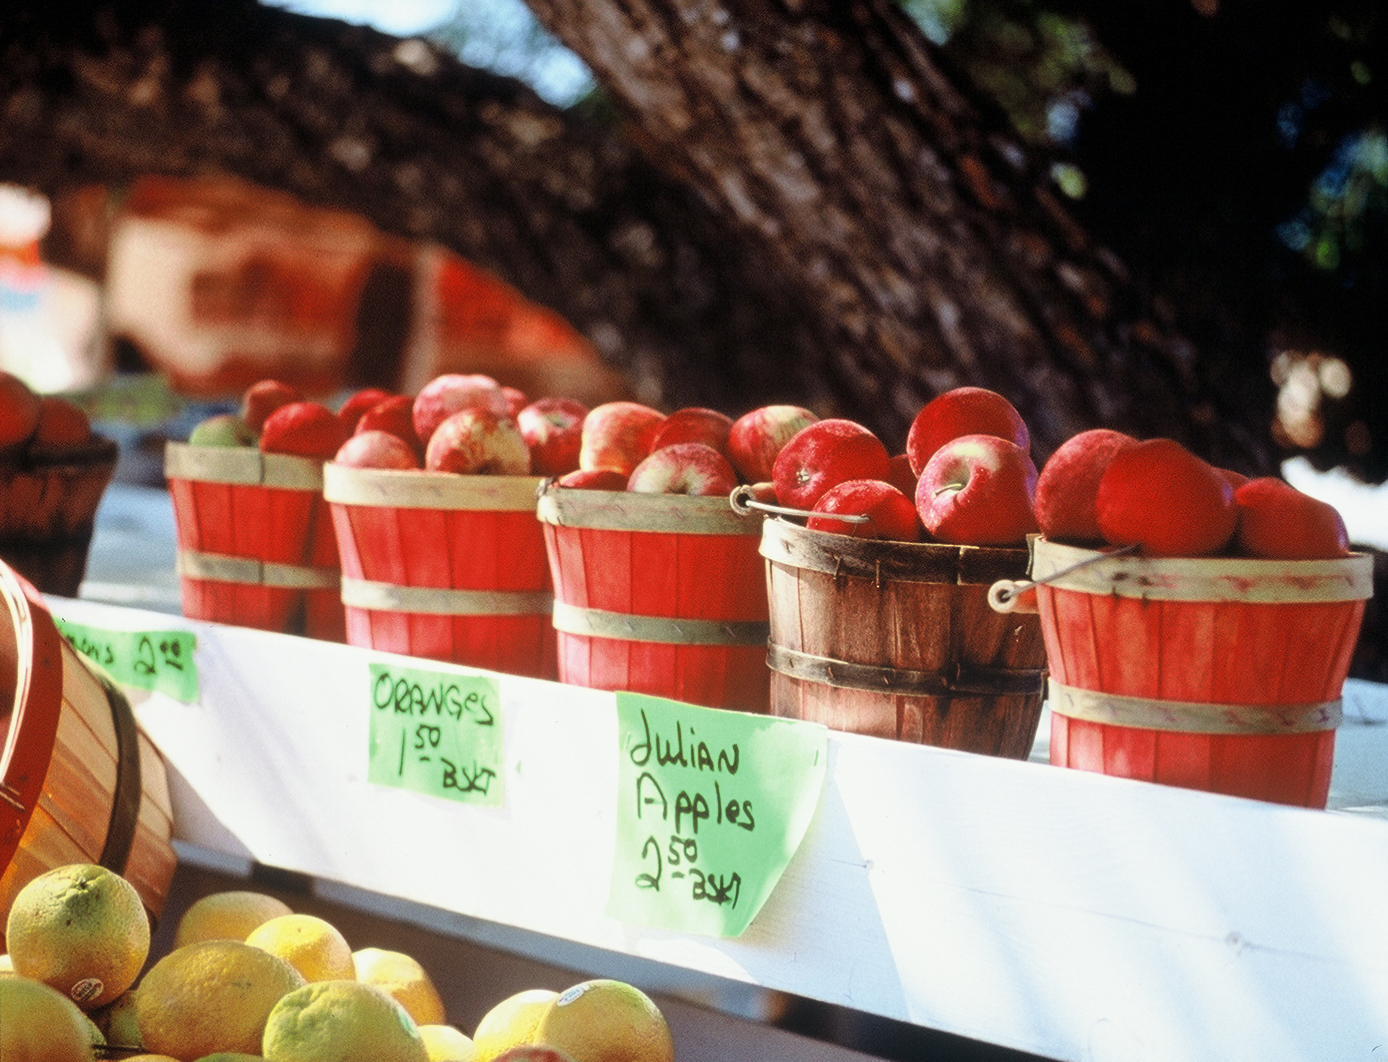 Bushels of apples for sale in Julian CA, a California destination with fall foliage